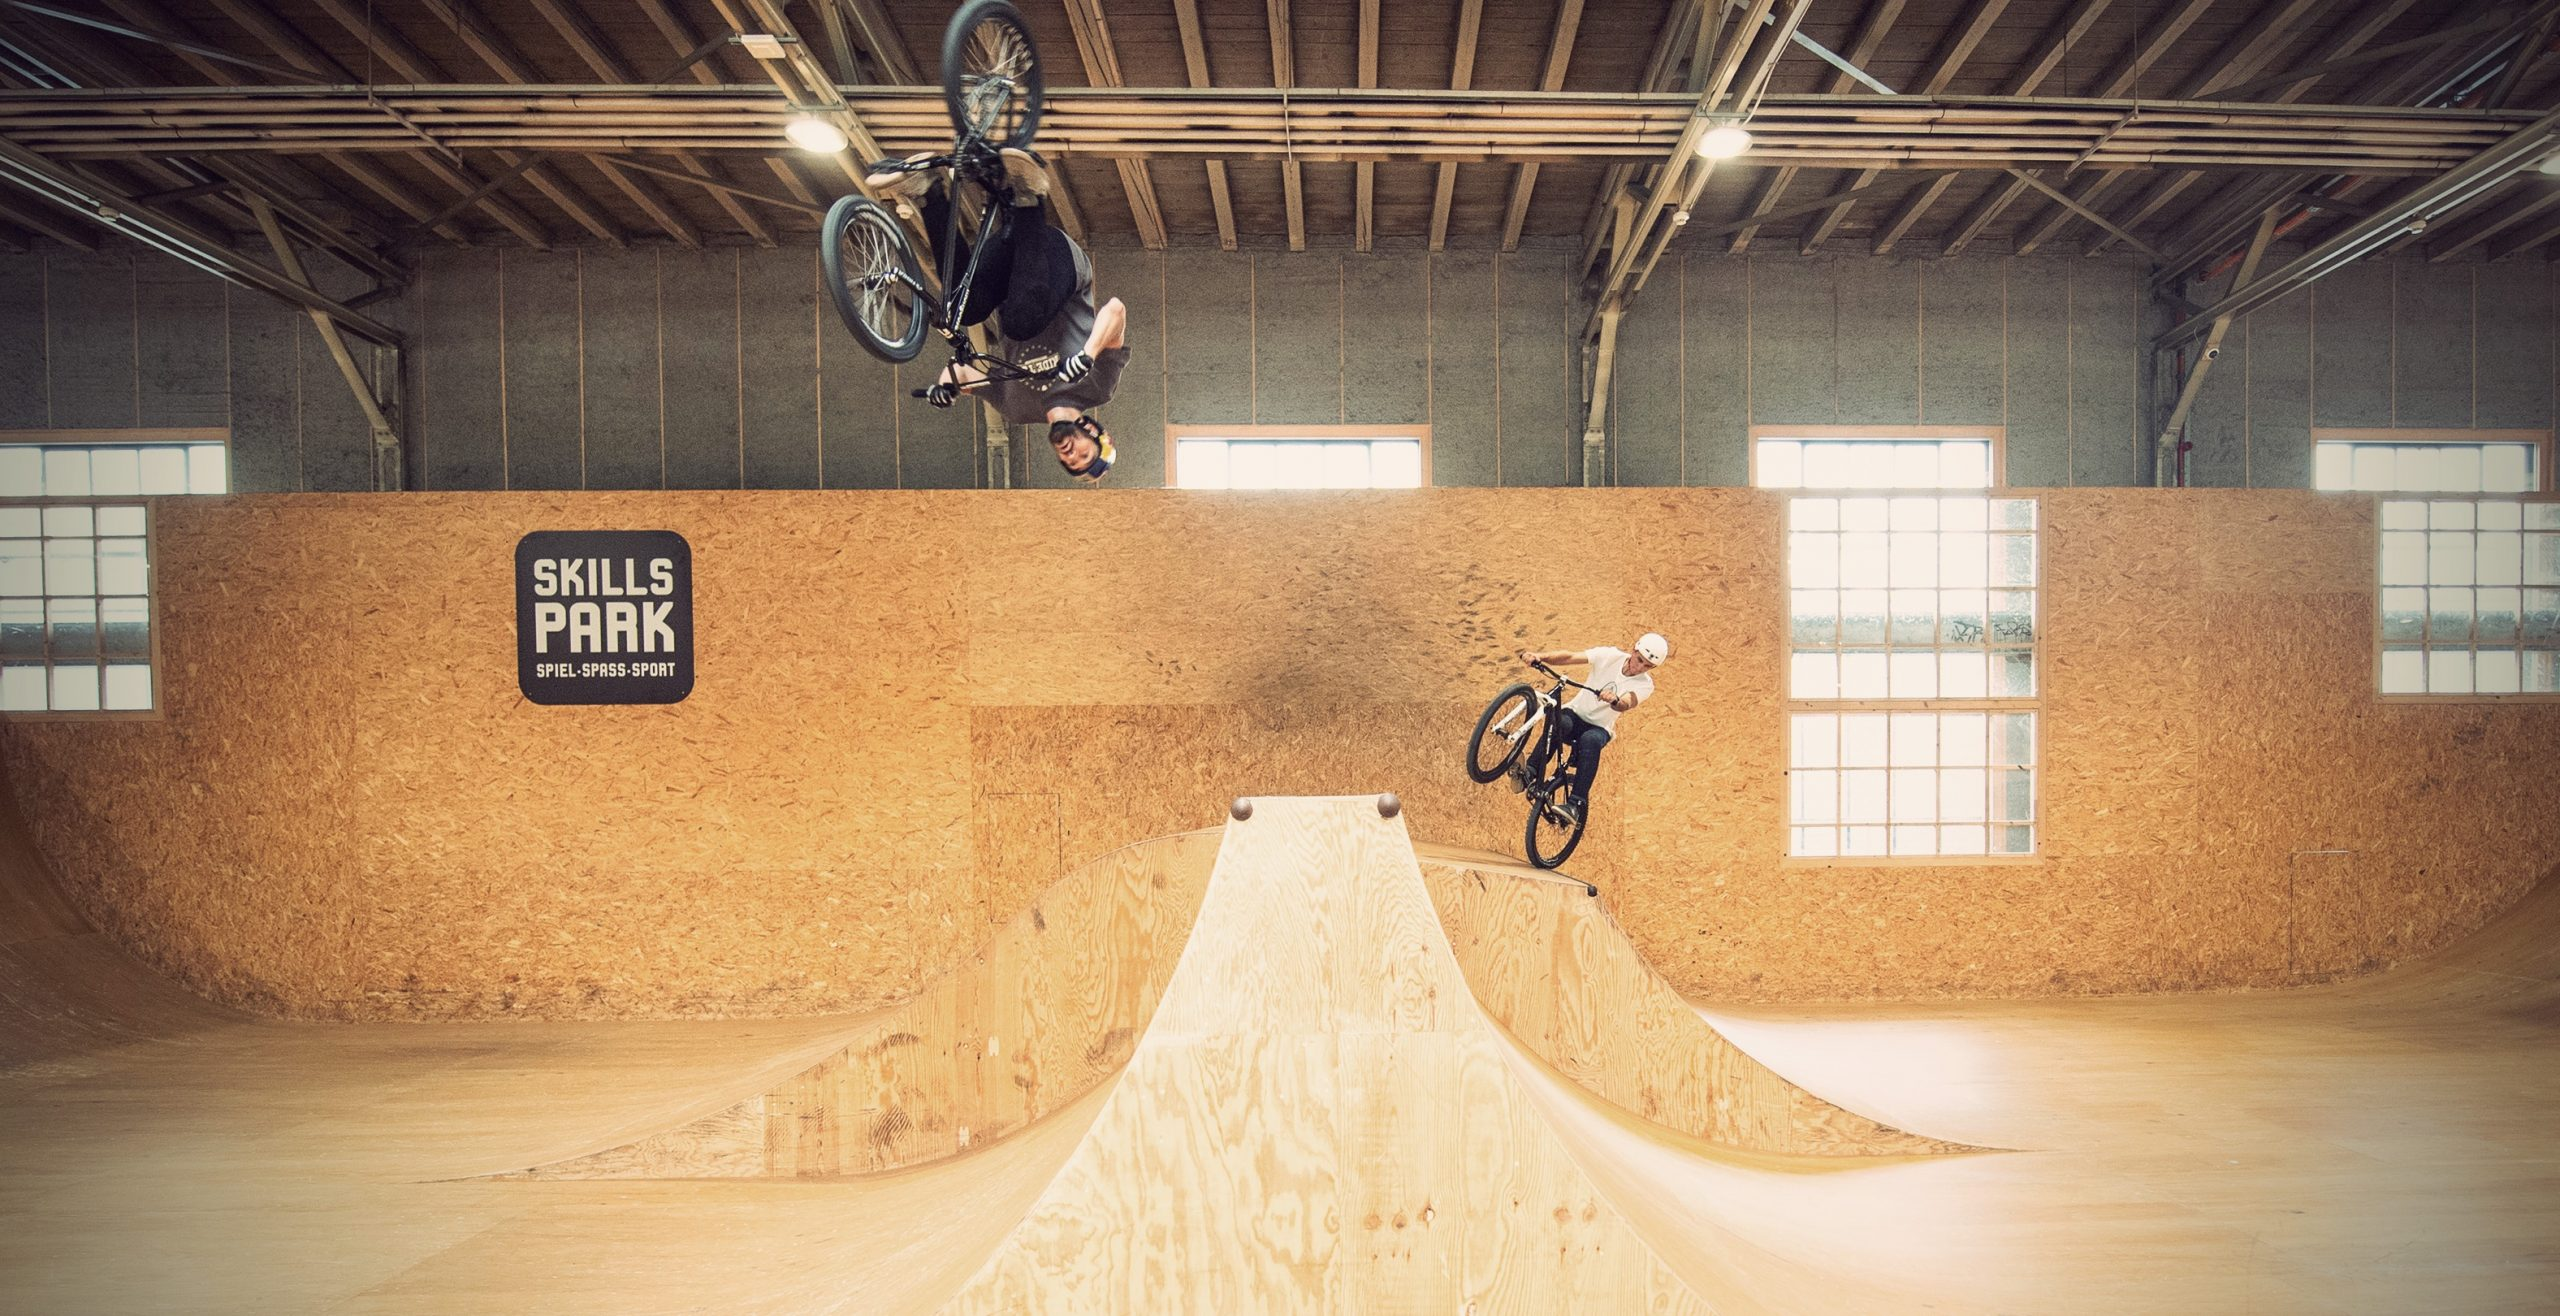 skillspark bmx and mtb session with Daniel Wedemeijer and Lucas Huppert